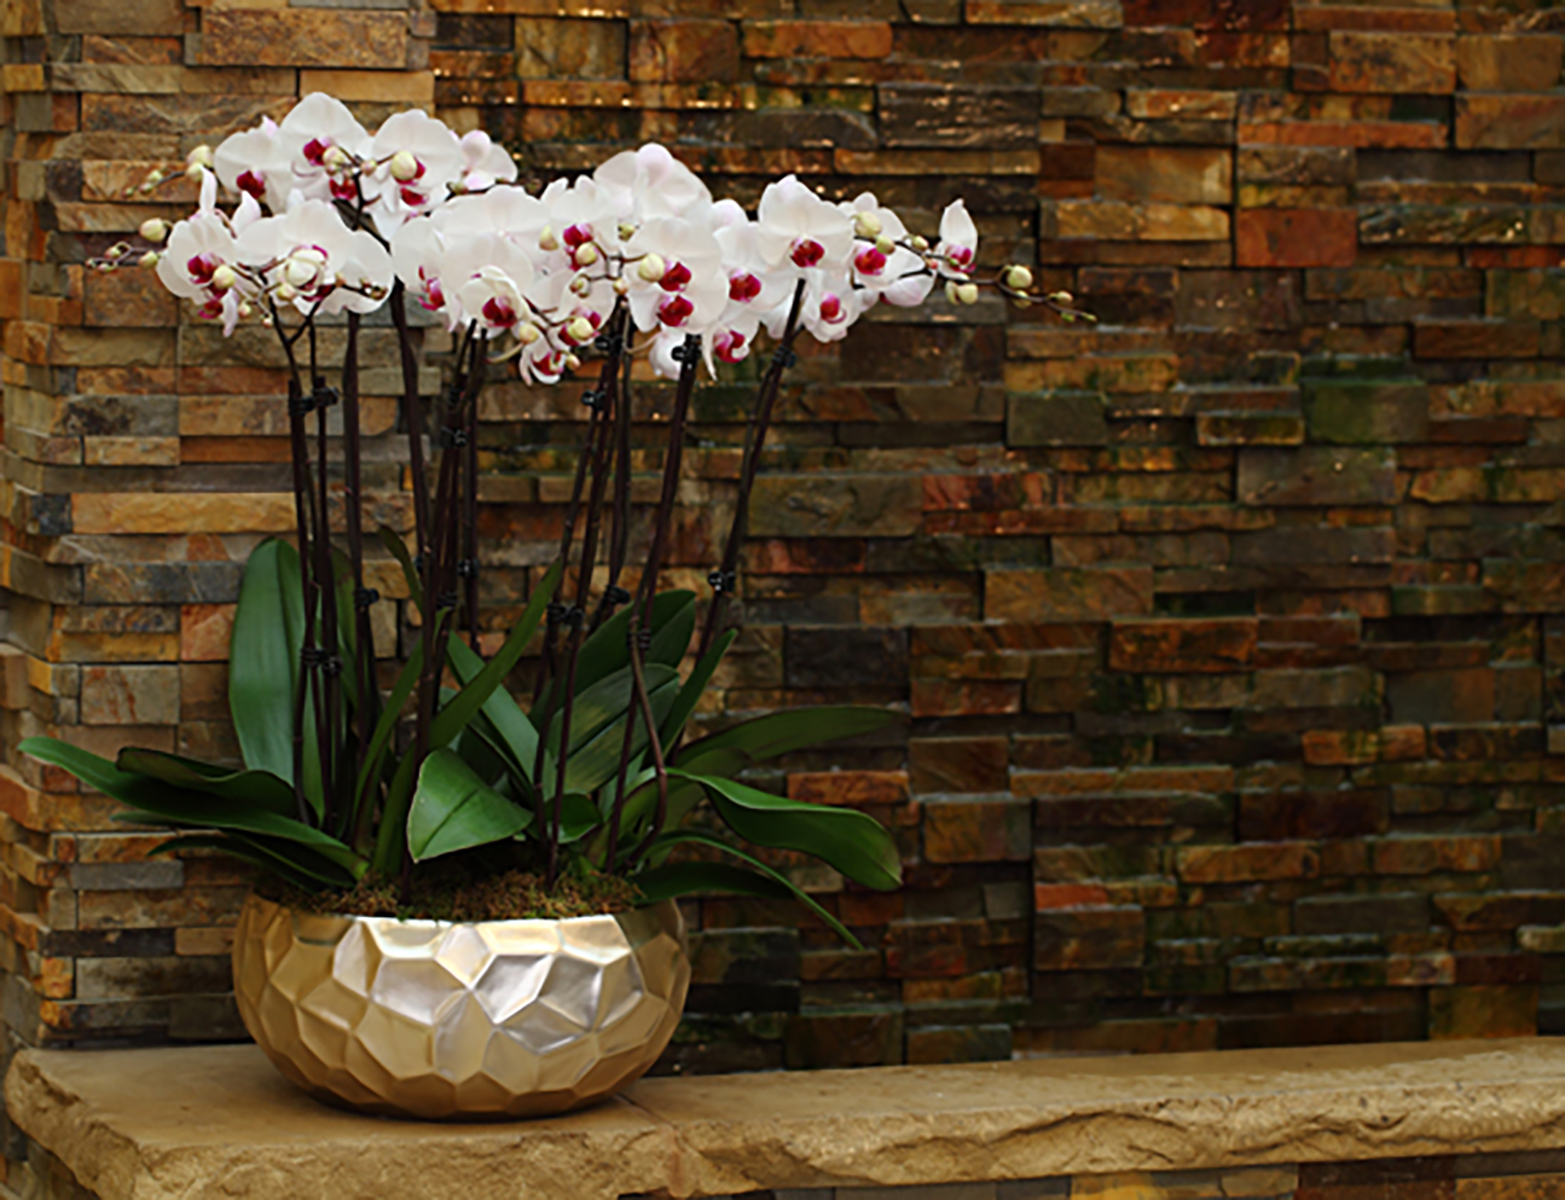 Planter-of-White-and-Burgundy-Orchids.jpg